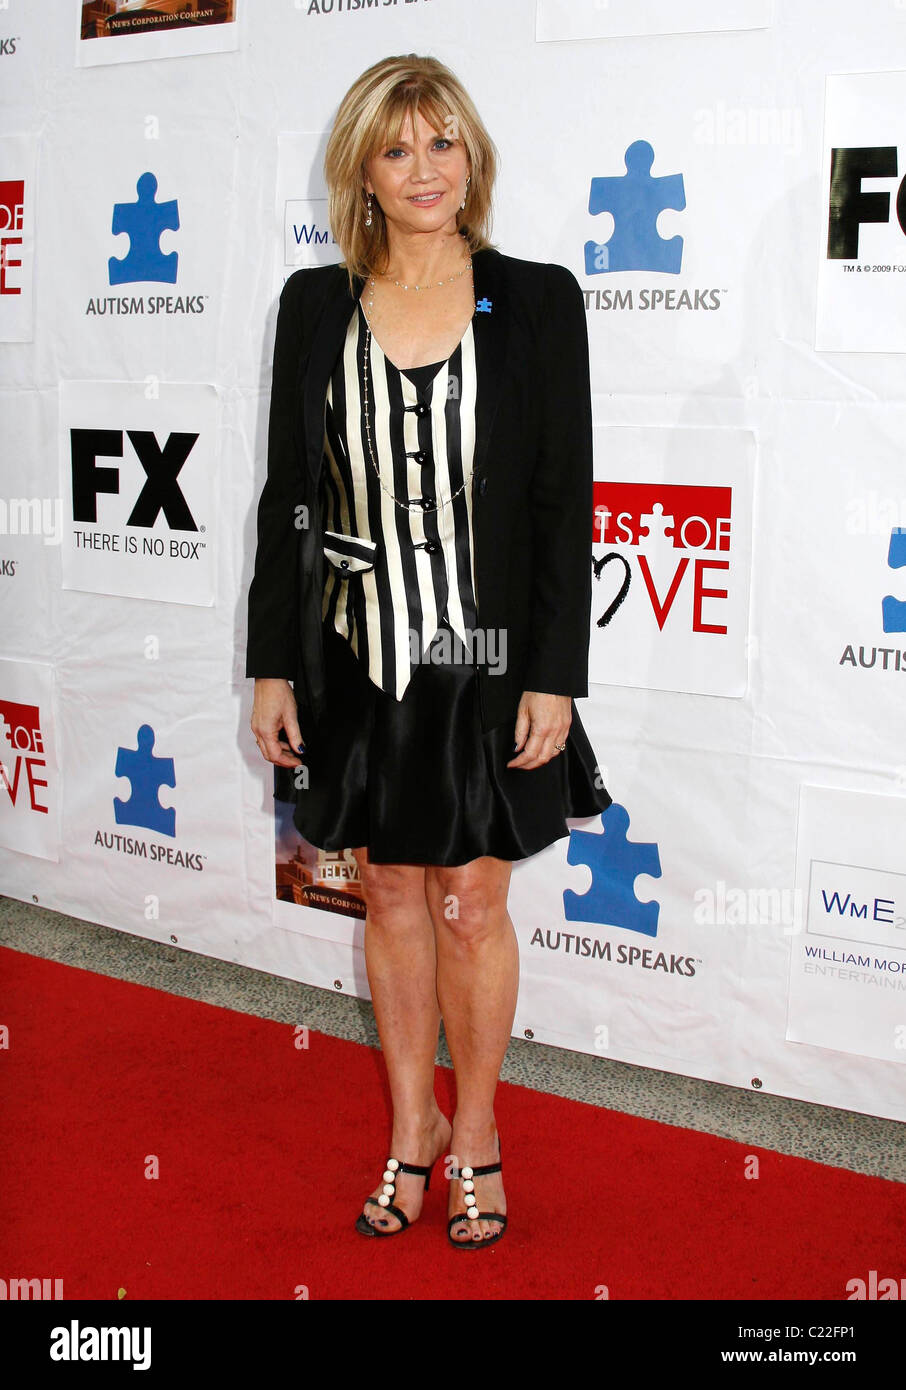 Markie Post Autism Speaks' 7th Annual 'Acts Of Love' Benefit held at Santa Monica College Santa Monica, - Stock Image